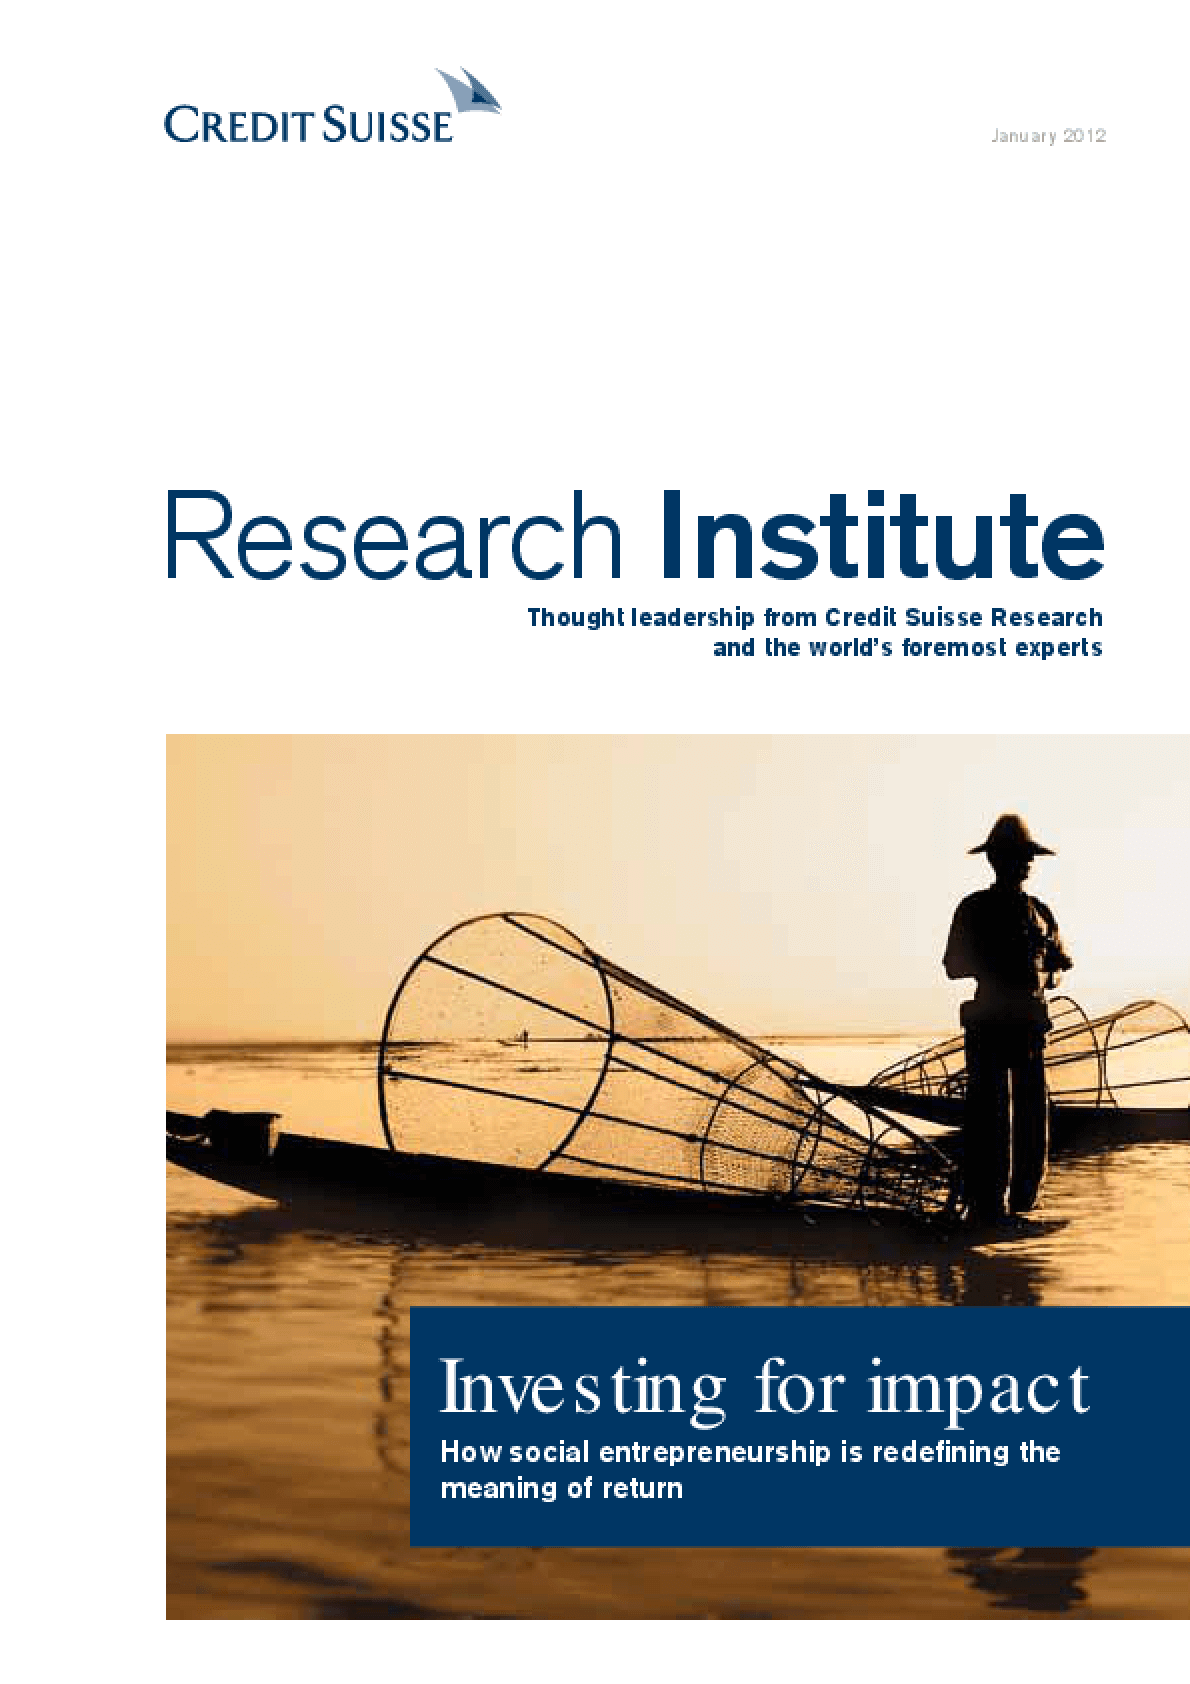 Investing for Impact: How Social Entrepreneurship is Redefining the Meaning of Return